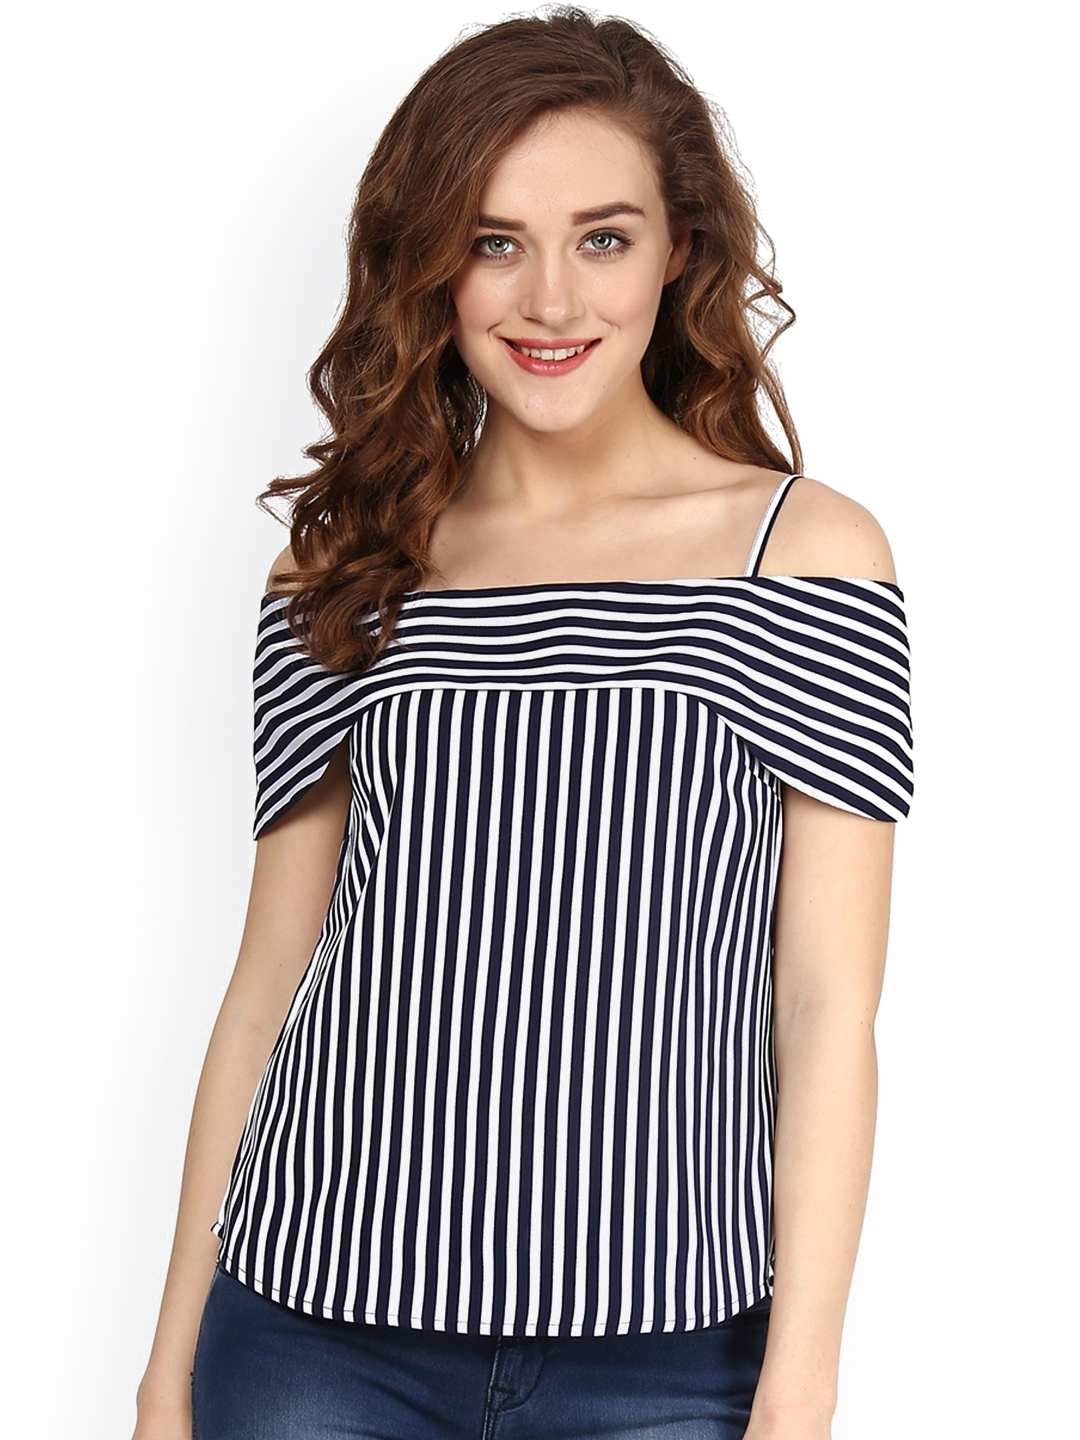 Off Shoulder Tops - Buy Off Shoulder Tops Online in India | Myntra